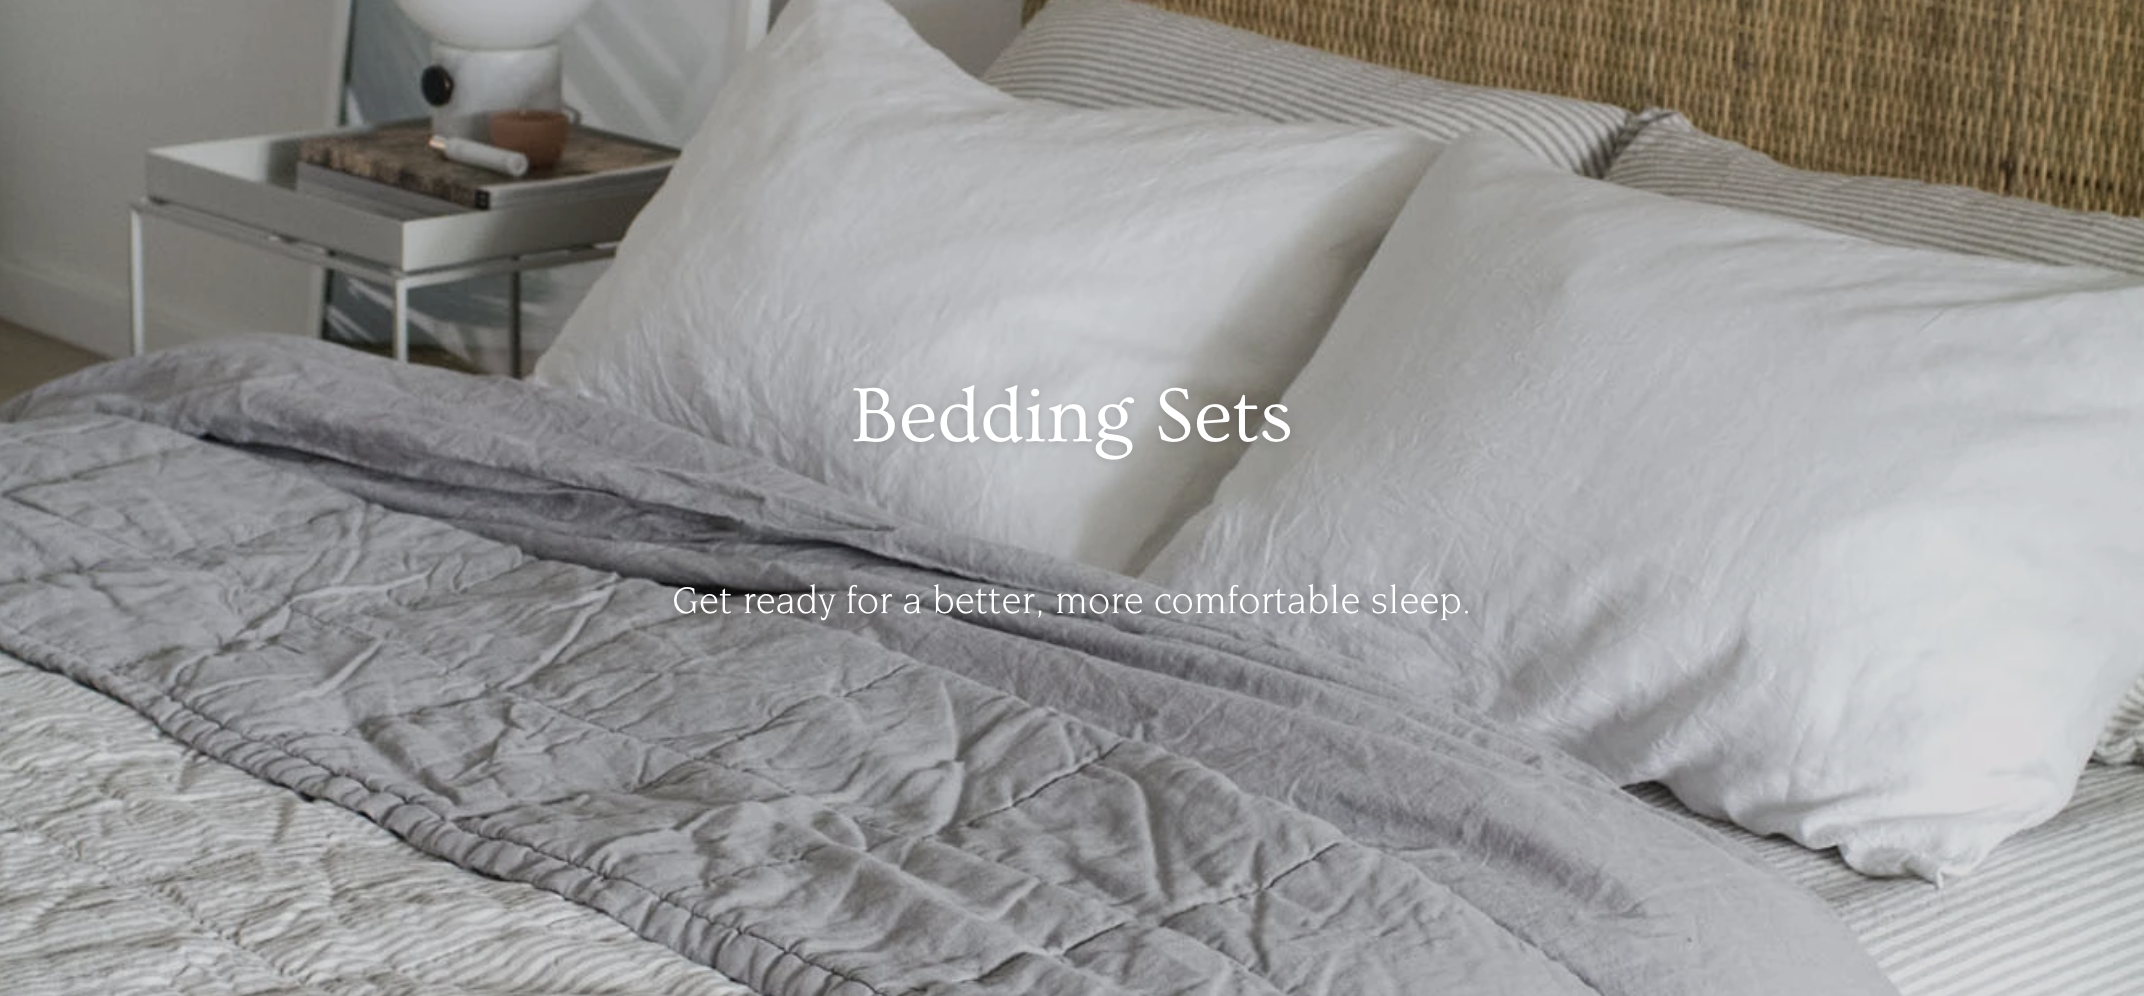 bedding_sets_collection_image_visible_on_collection_page.png